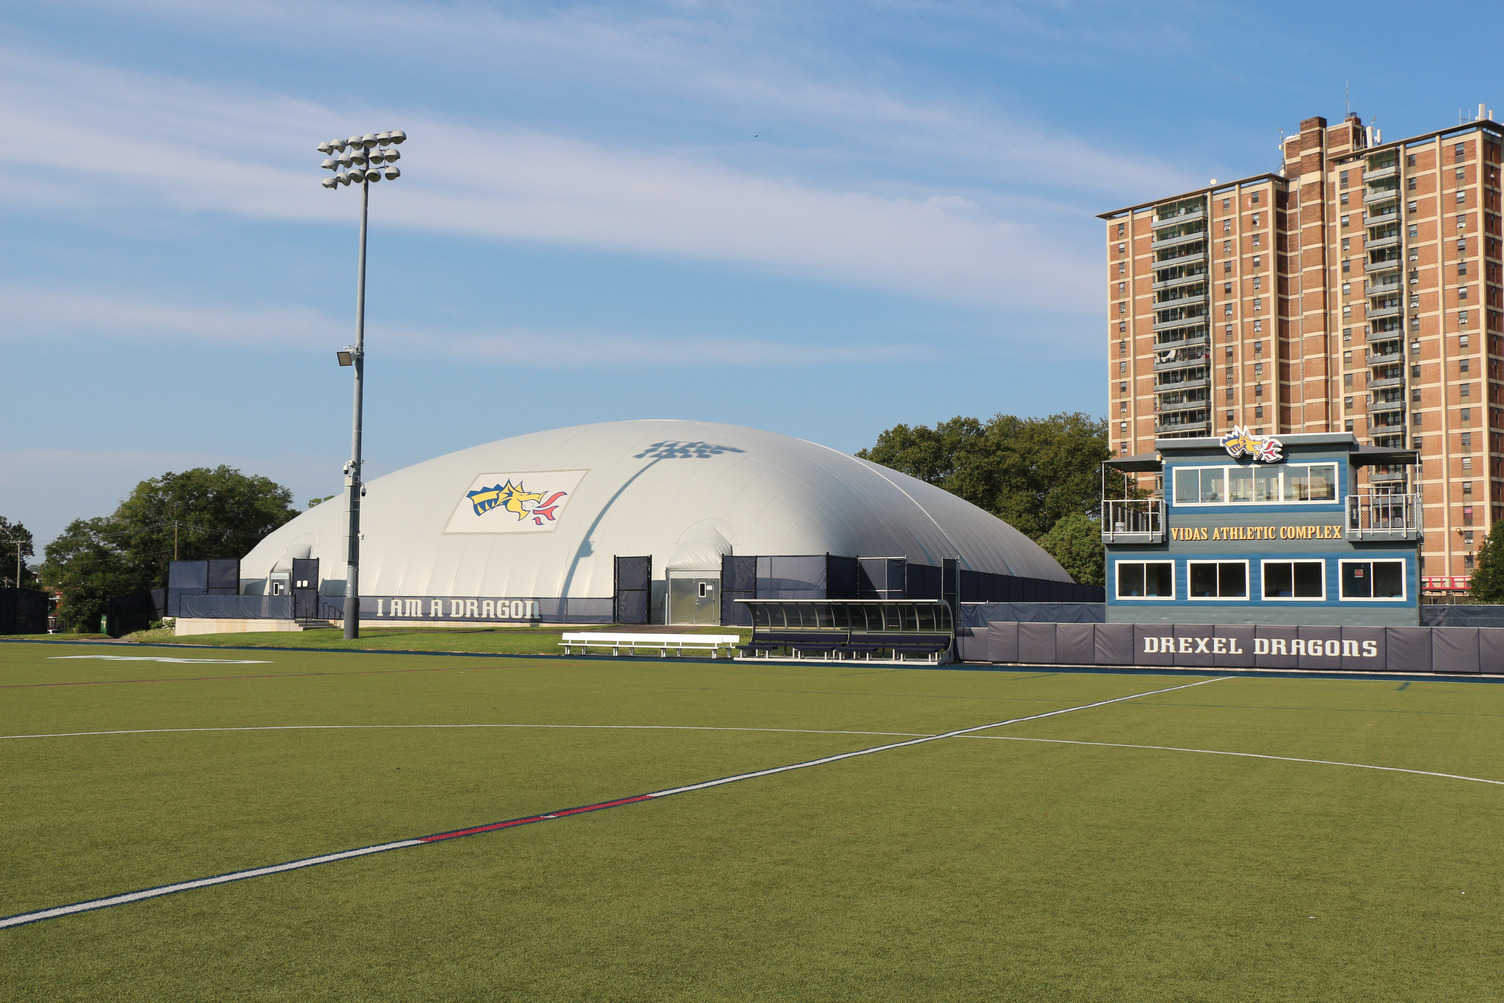 DuPont Tedlar Wallcovering Film Drexel University Vidas Athletic Field Inflatable Dome Exterior Protective Film Outdoor Field View